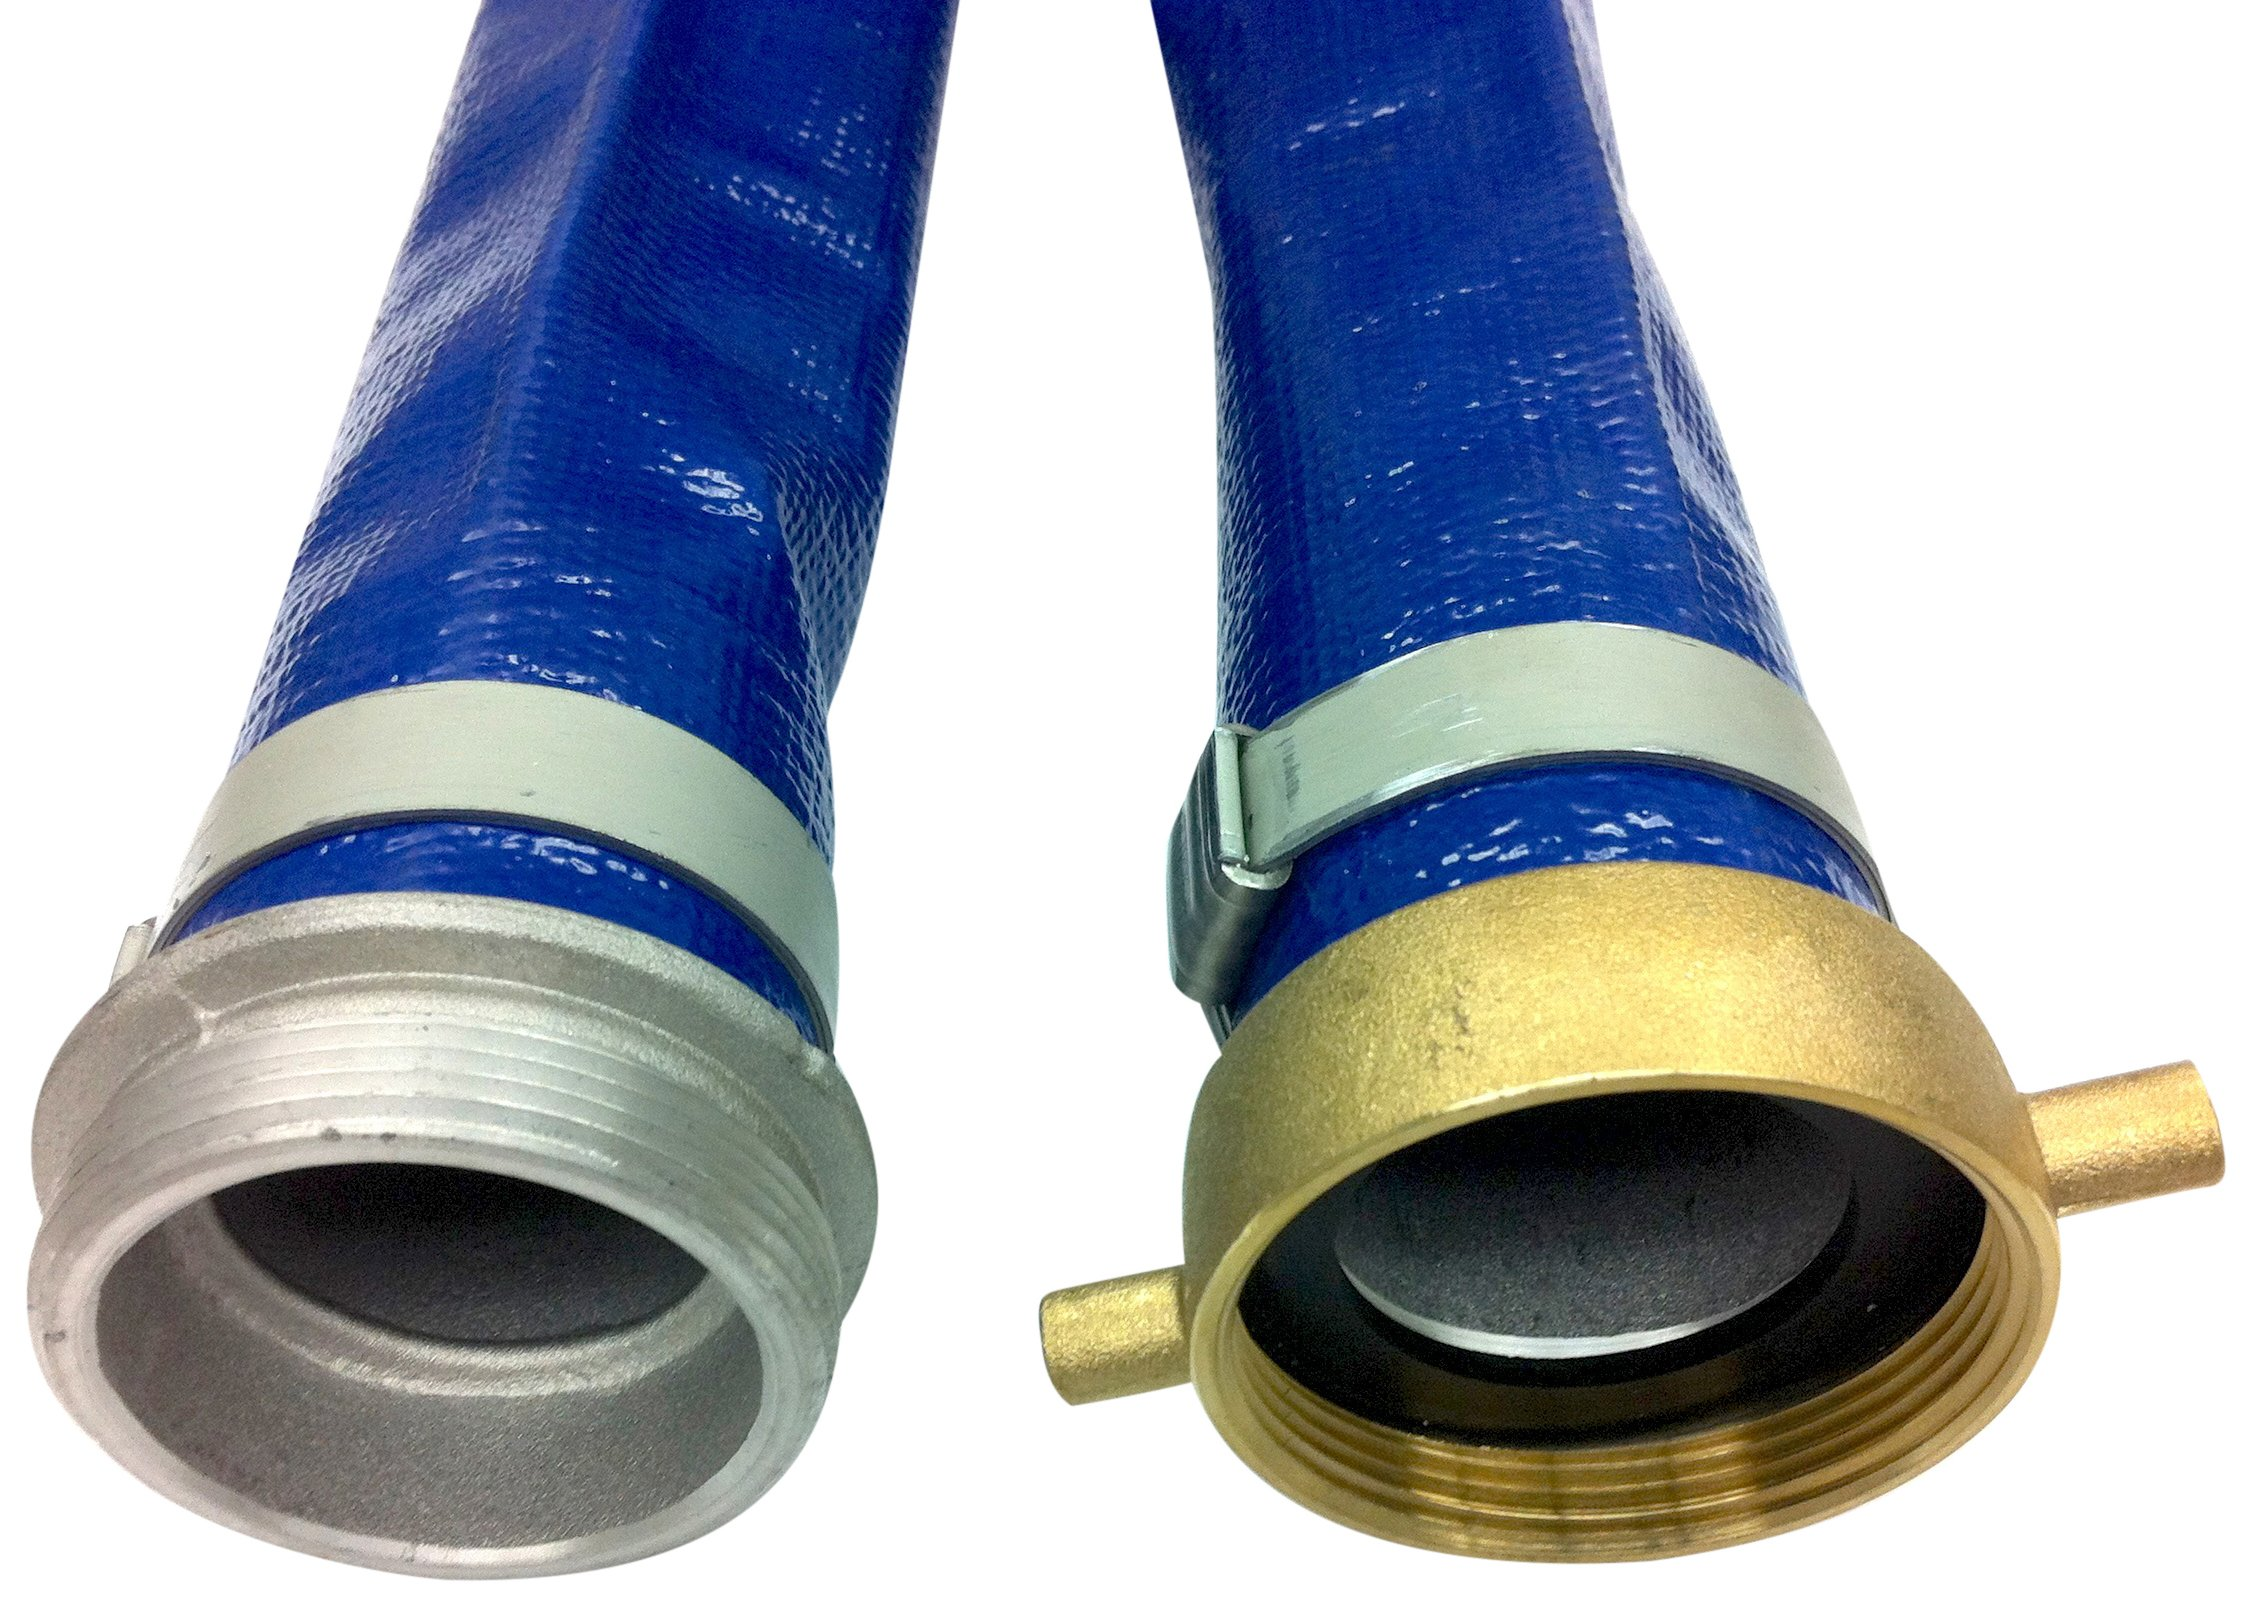 Unisource 200 Blue PVC Discharge Hose Assembly, 2'' MPT x NPSM Female Swivel Connection, 80 PSI Maximum Pressure, 50' Length, 2'' ID by Unisource